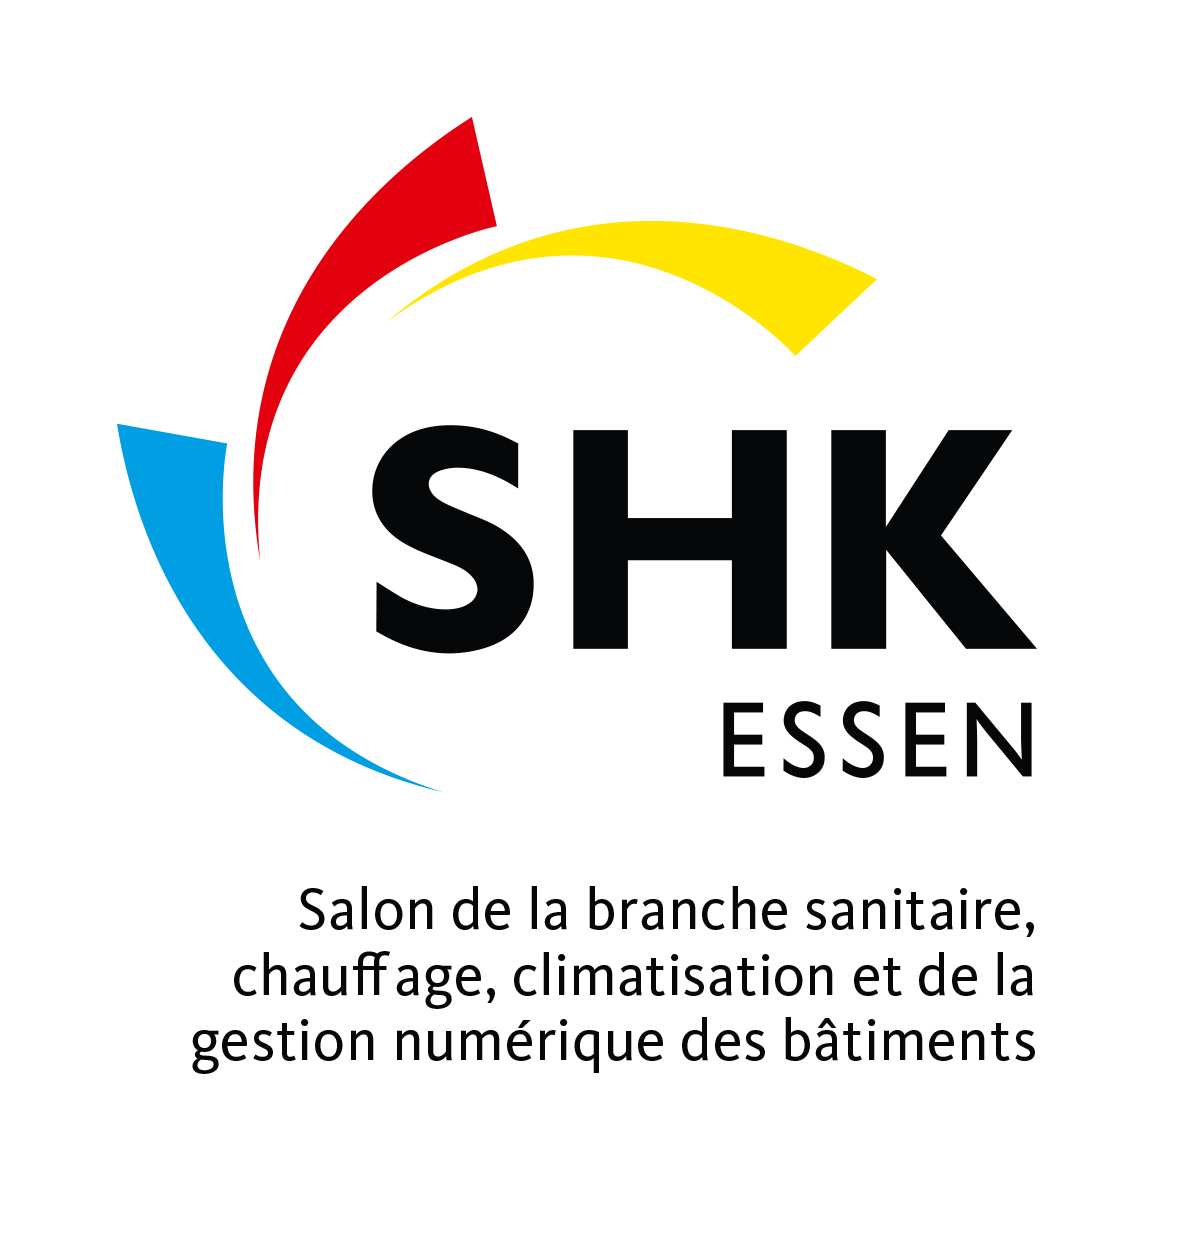 SHK ESSEN with claim (French)